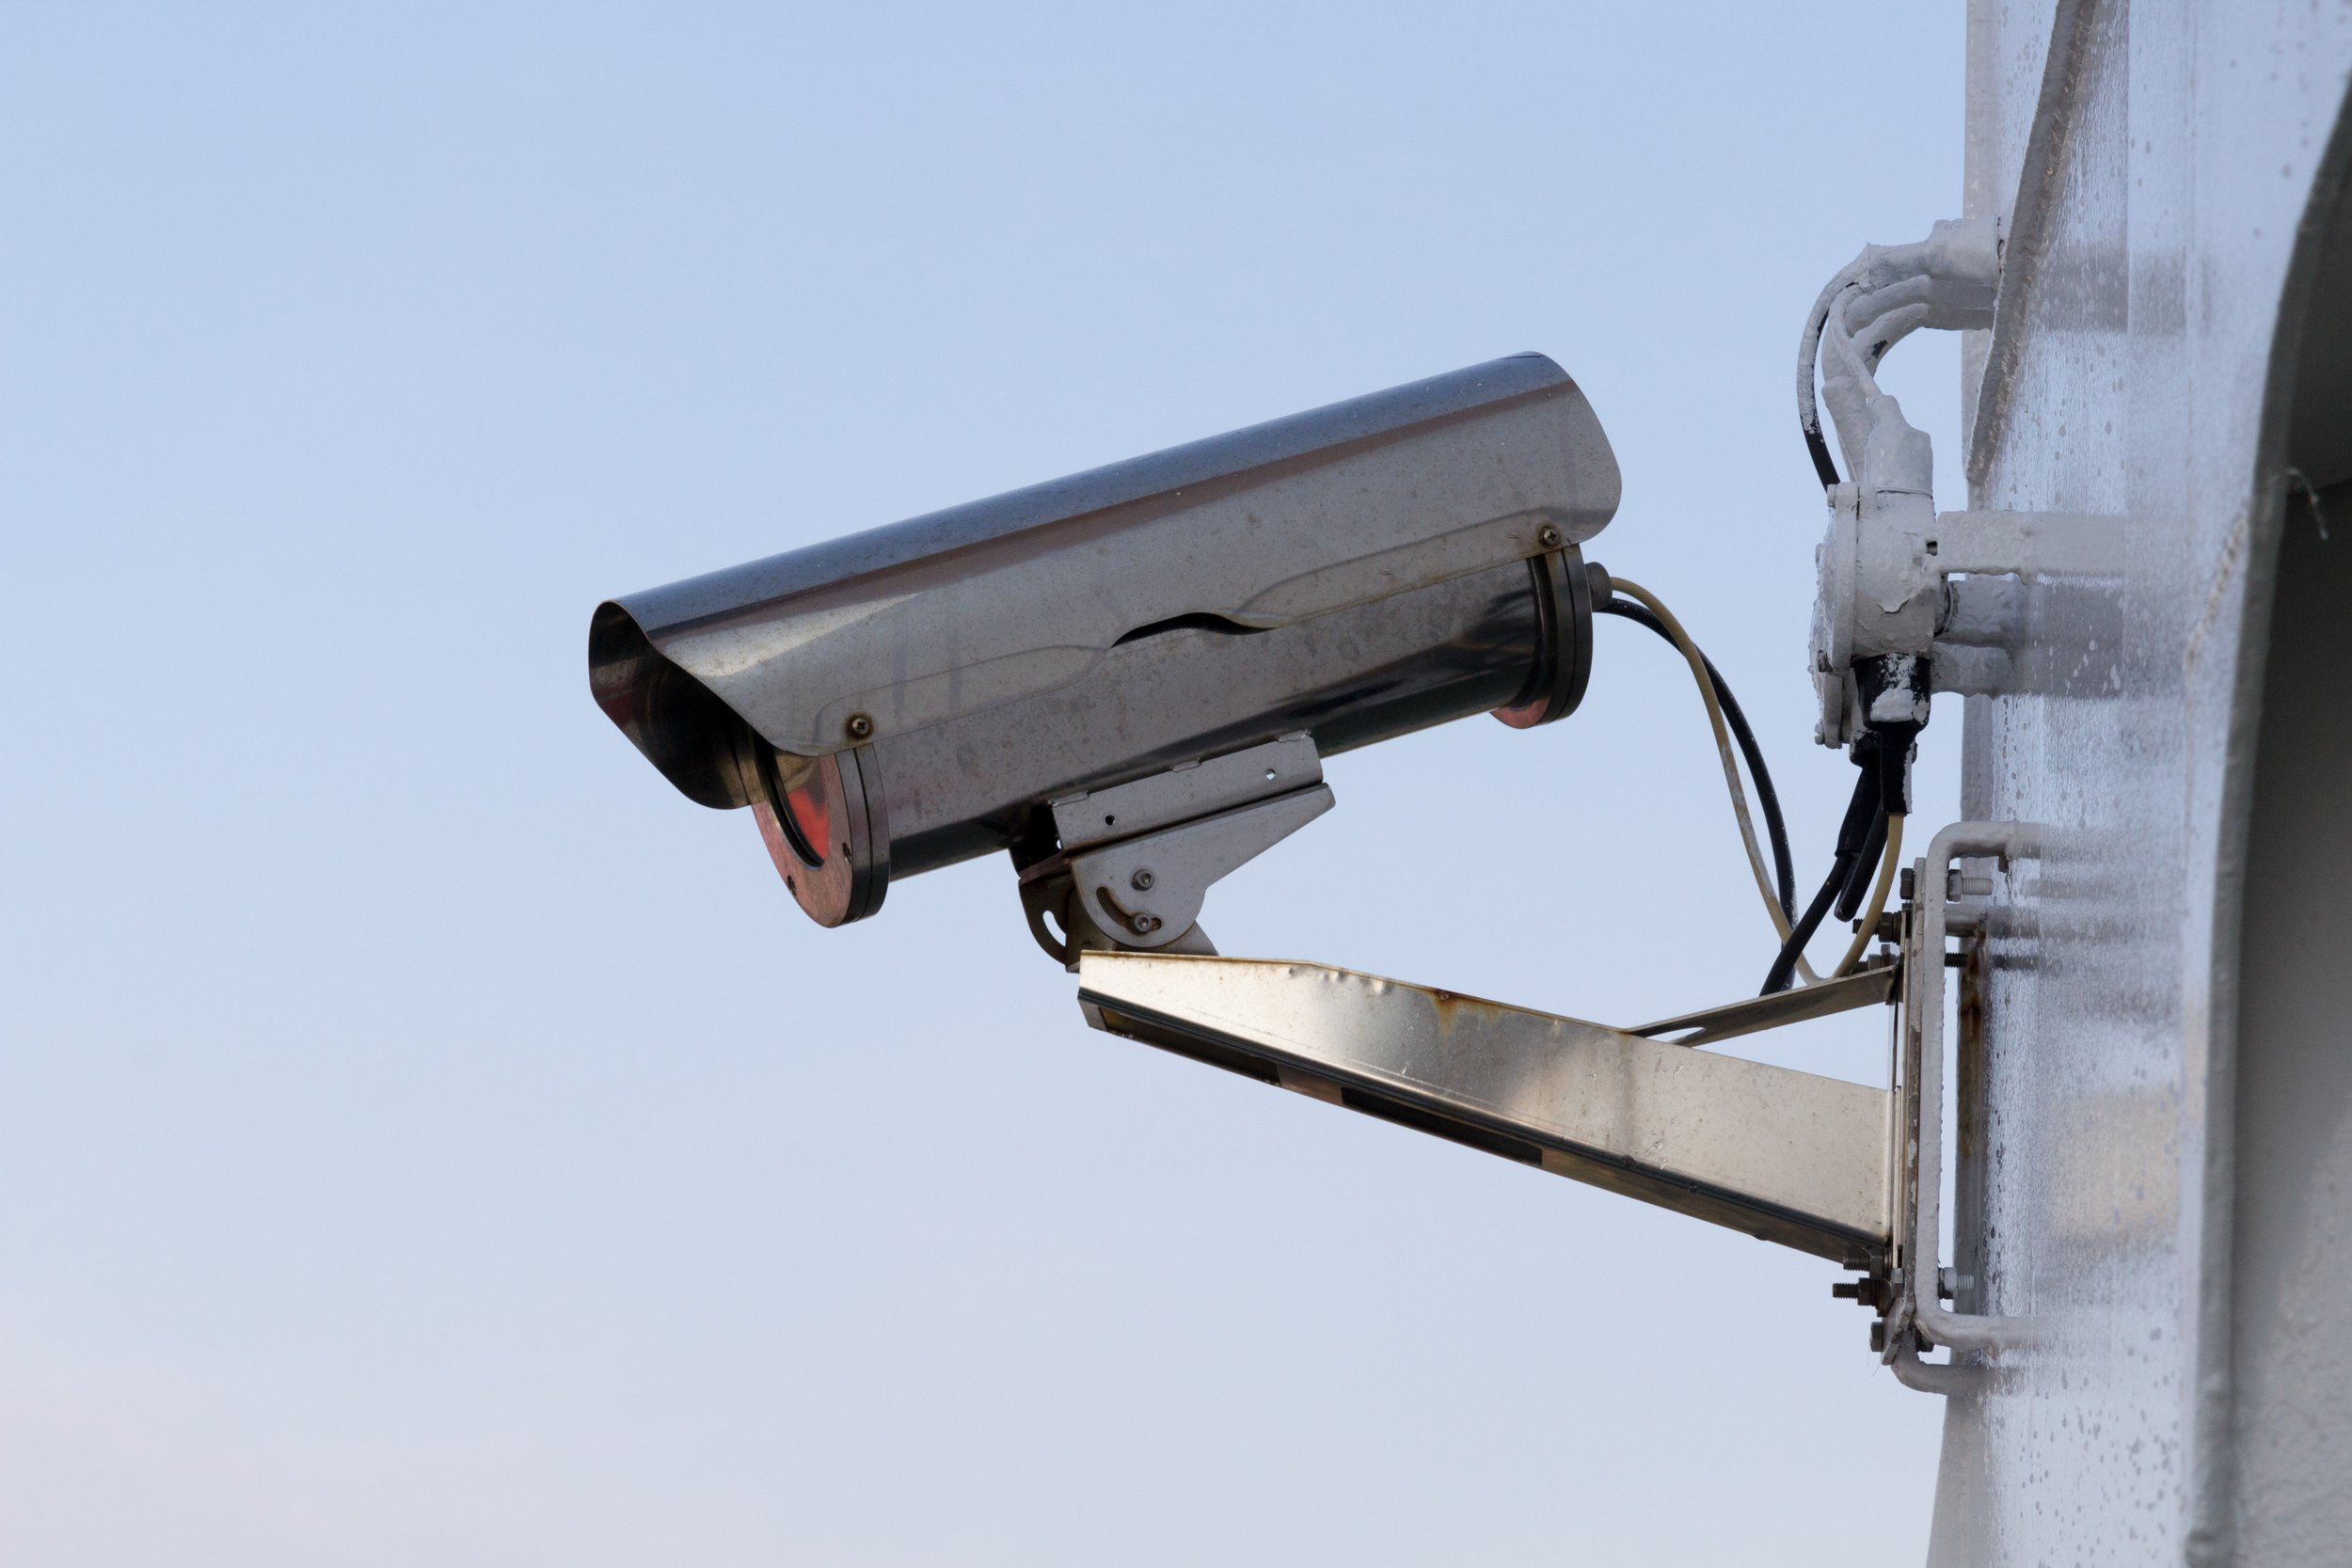 Cutting-edge indoor and outdoor surveillance for 24/7 product safety